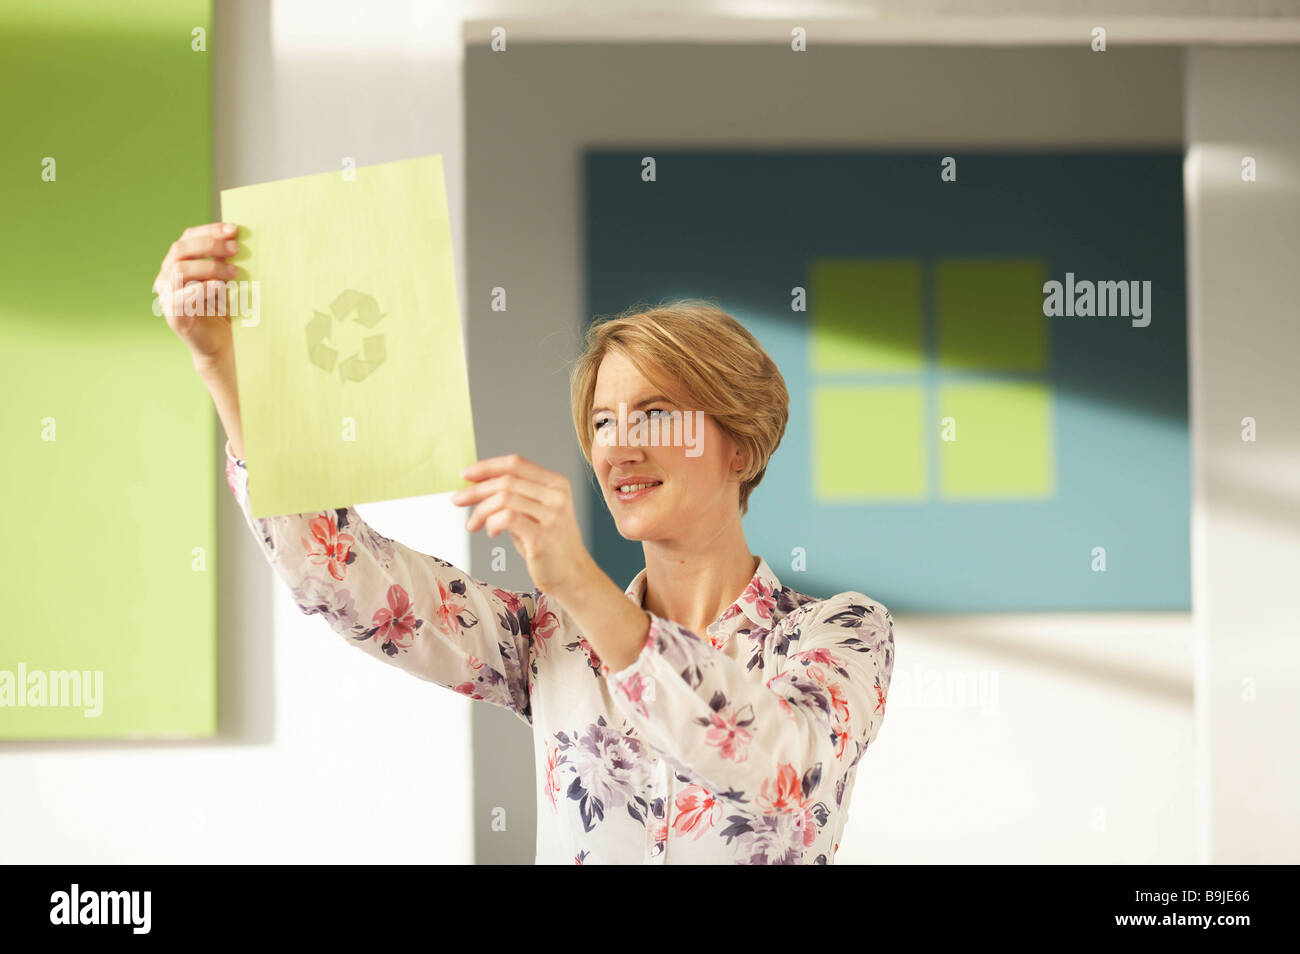 Woman looking at recycling logo - Stock Image